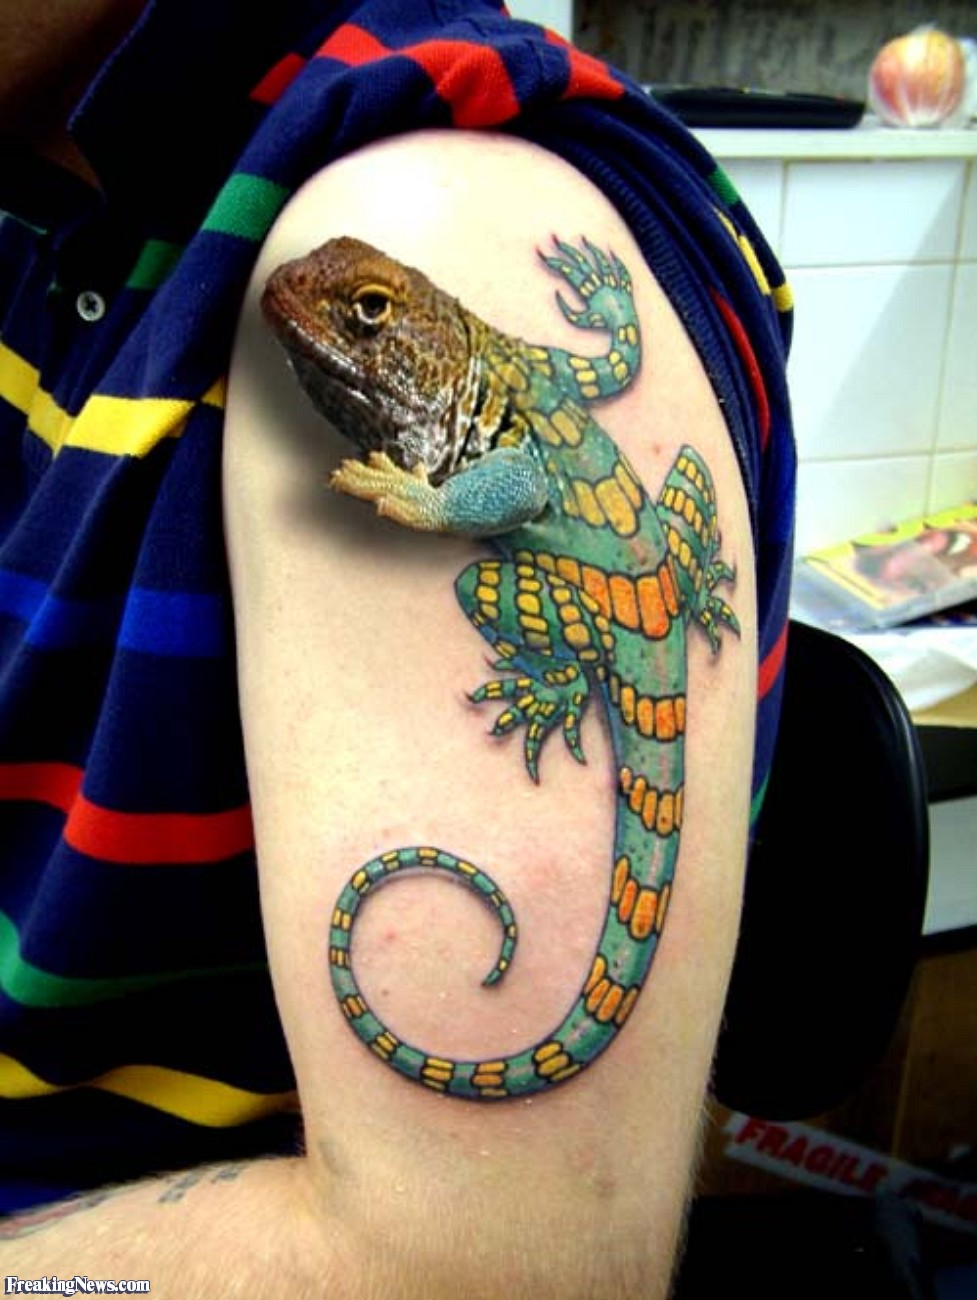 The Most Hyper Realistic Tattoos Existing Today | Page 33 ... 10 Realistic 3d Tattoos